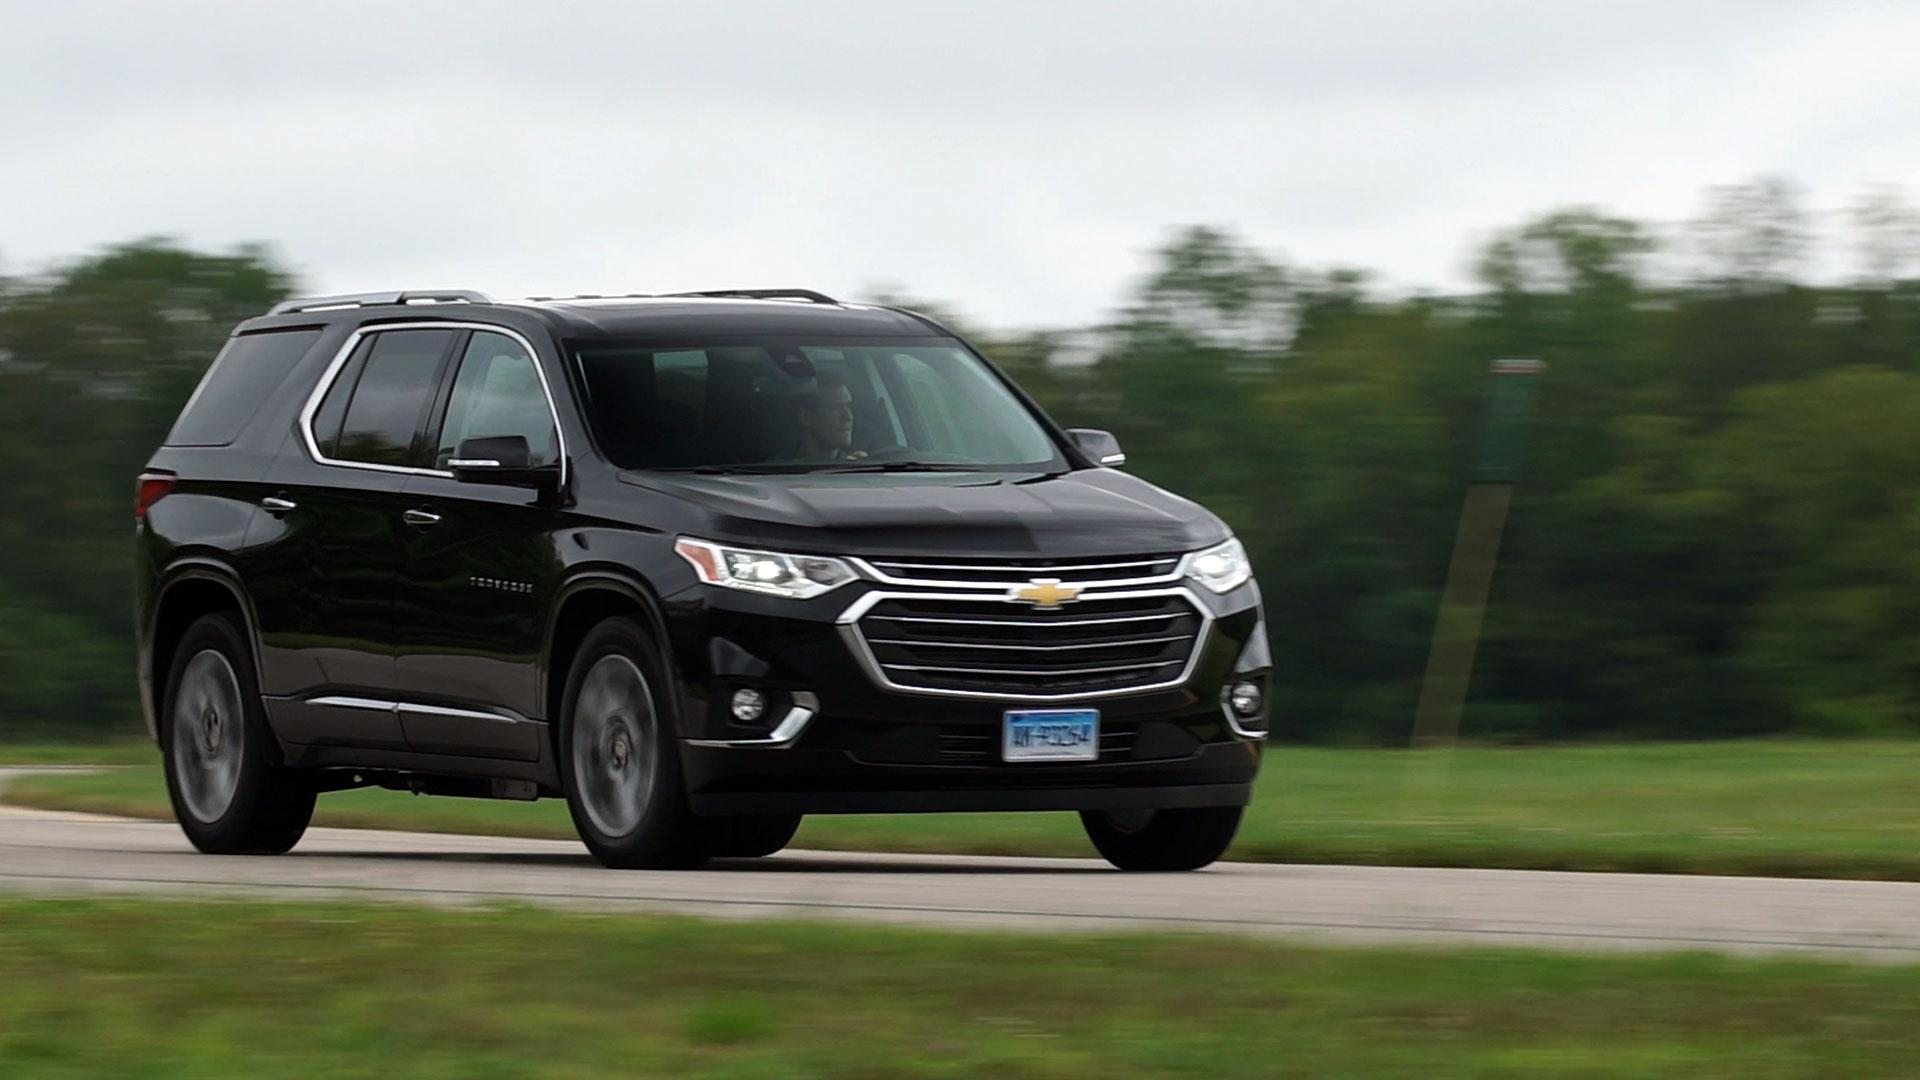 2018 chevrolet traverse review consumer reports. Black Bedroom Furniture Sets. Home Design Ideas